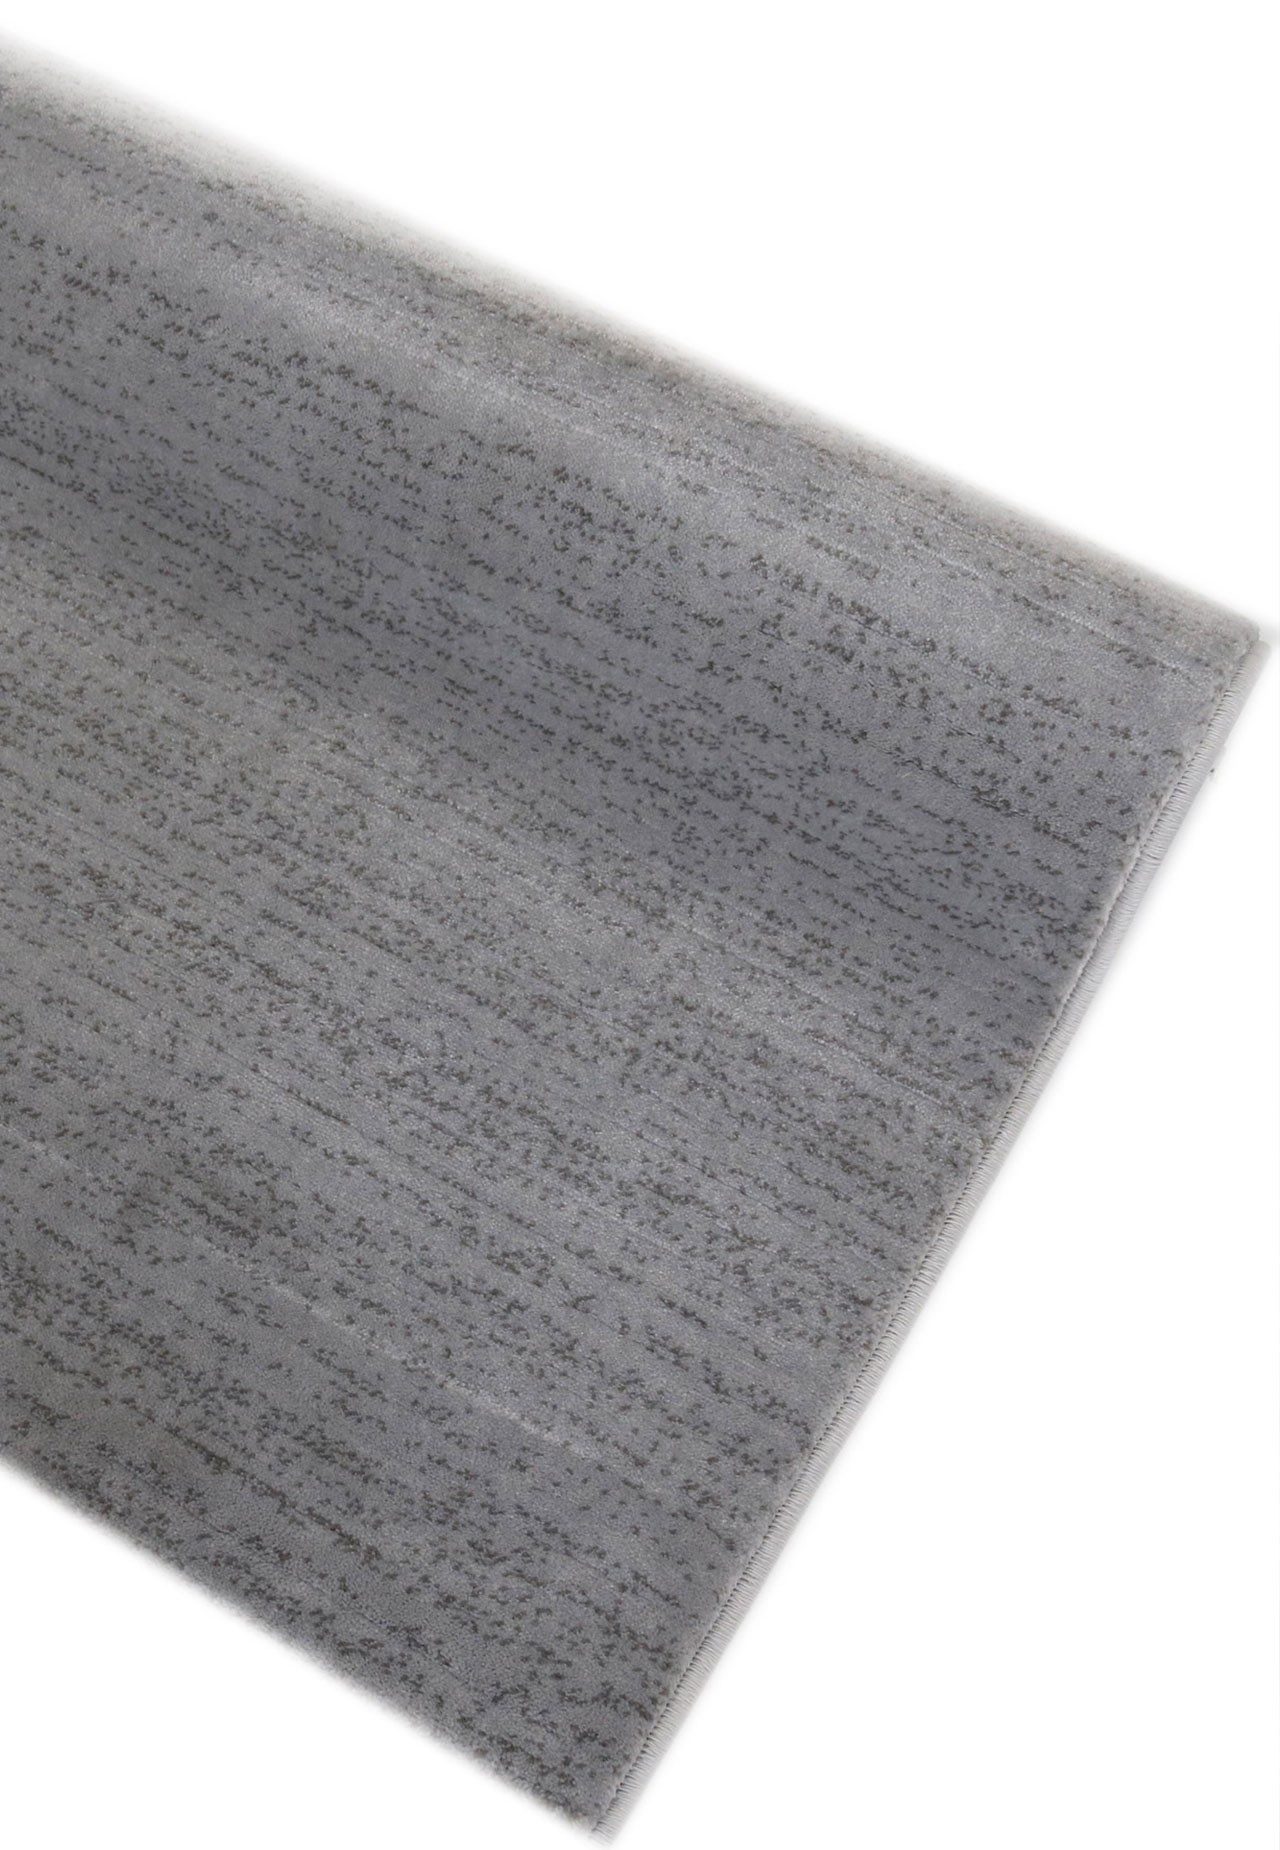 Tapis a poils courts moderne gris clair soft universal for Tapis gris poil court